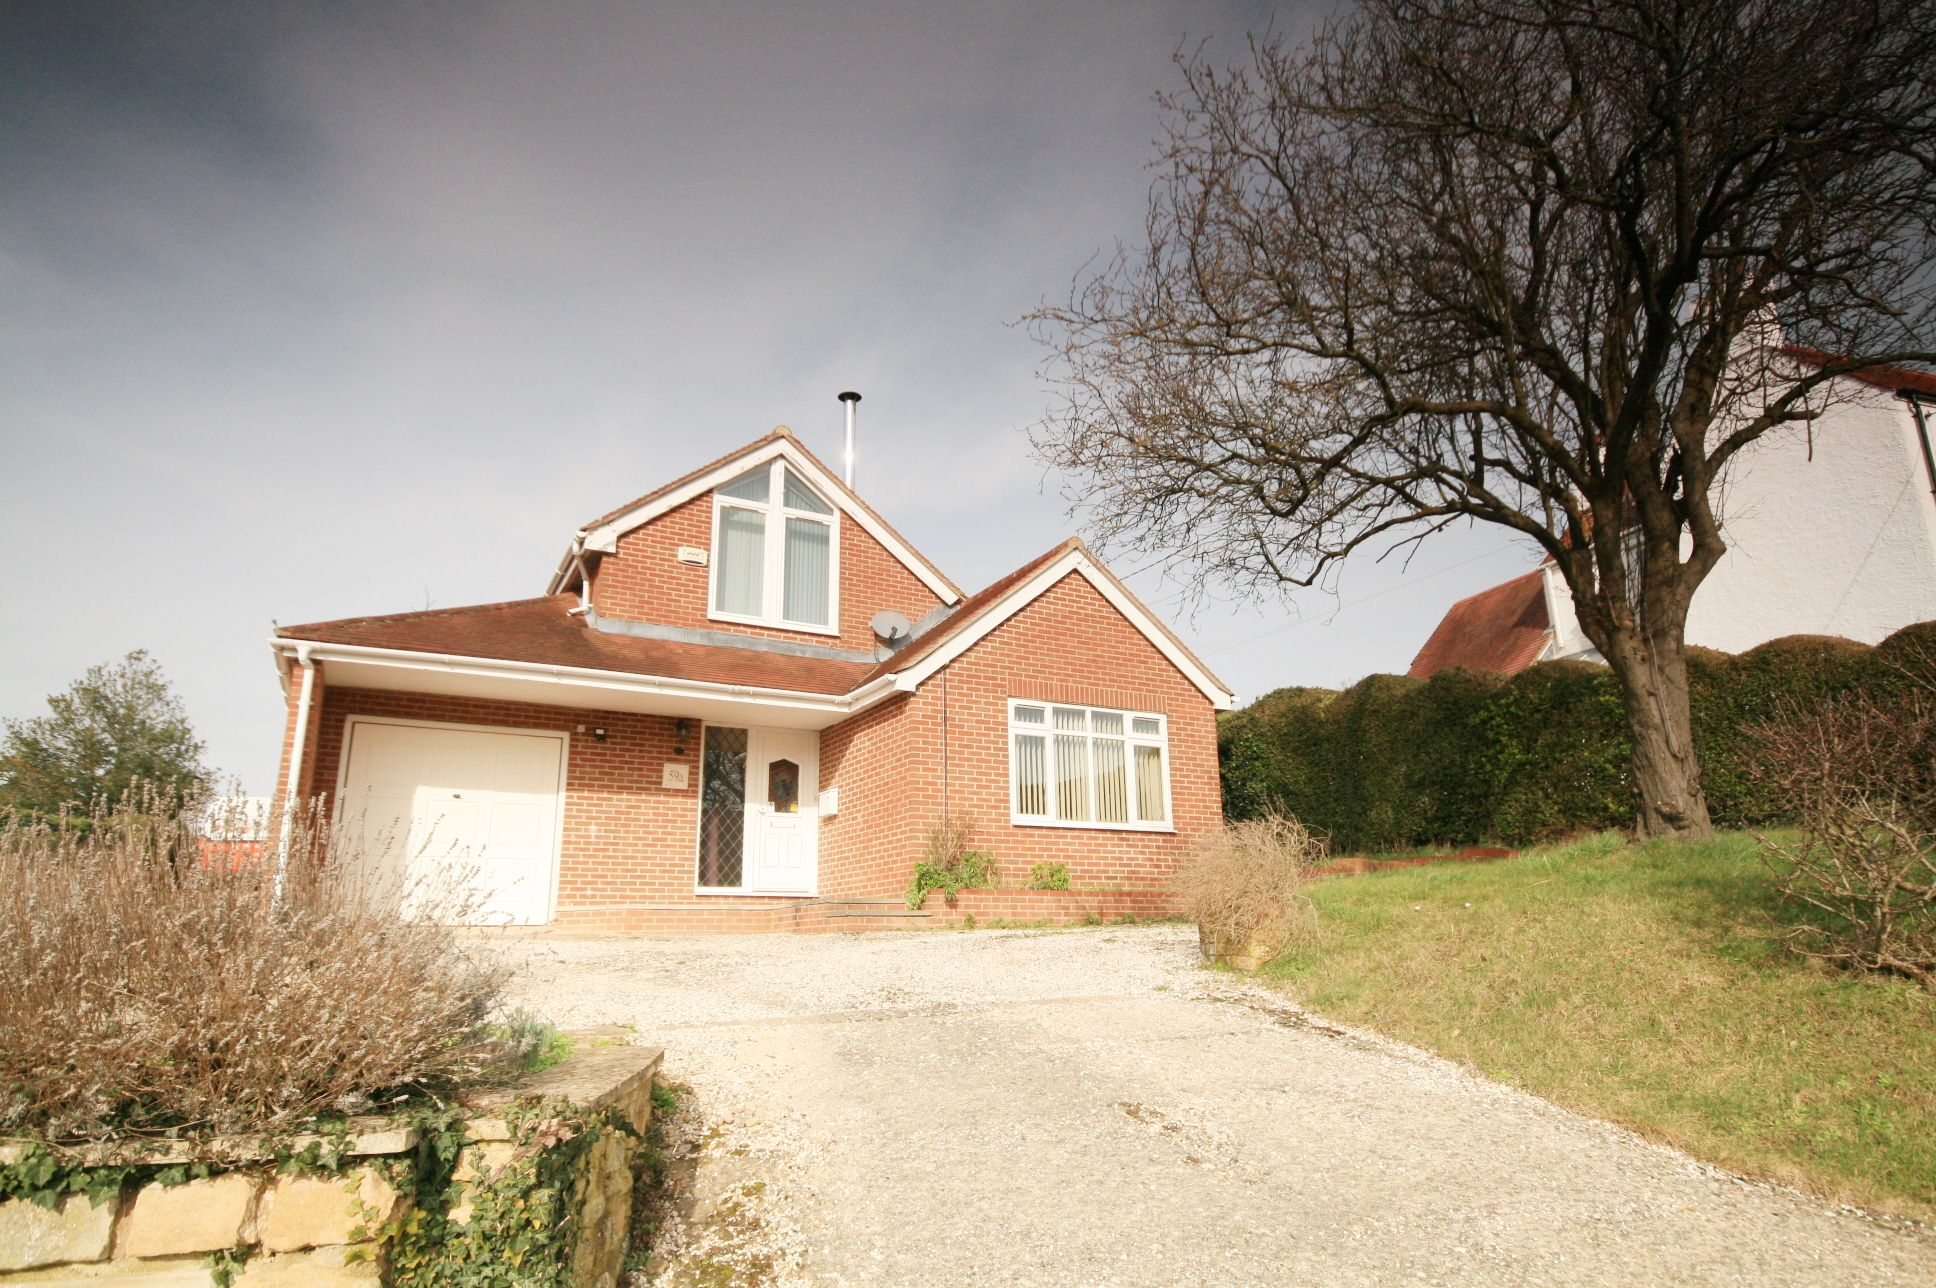 2 Bedroom Detached House To Rent - Photograph 1